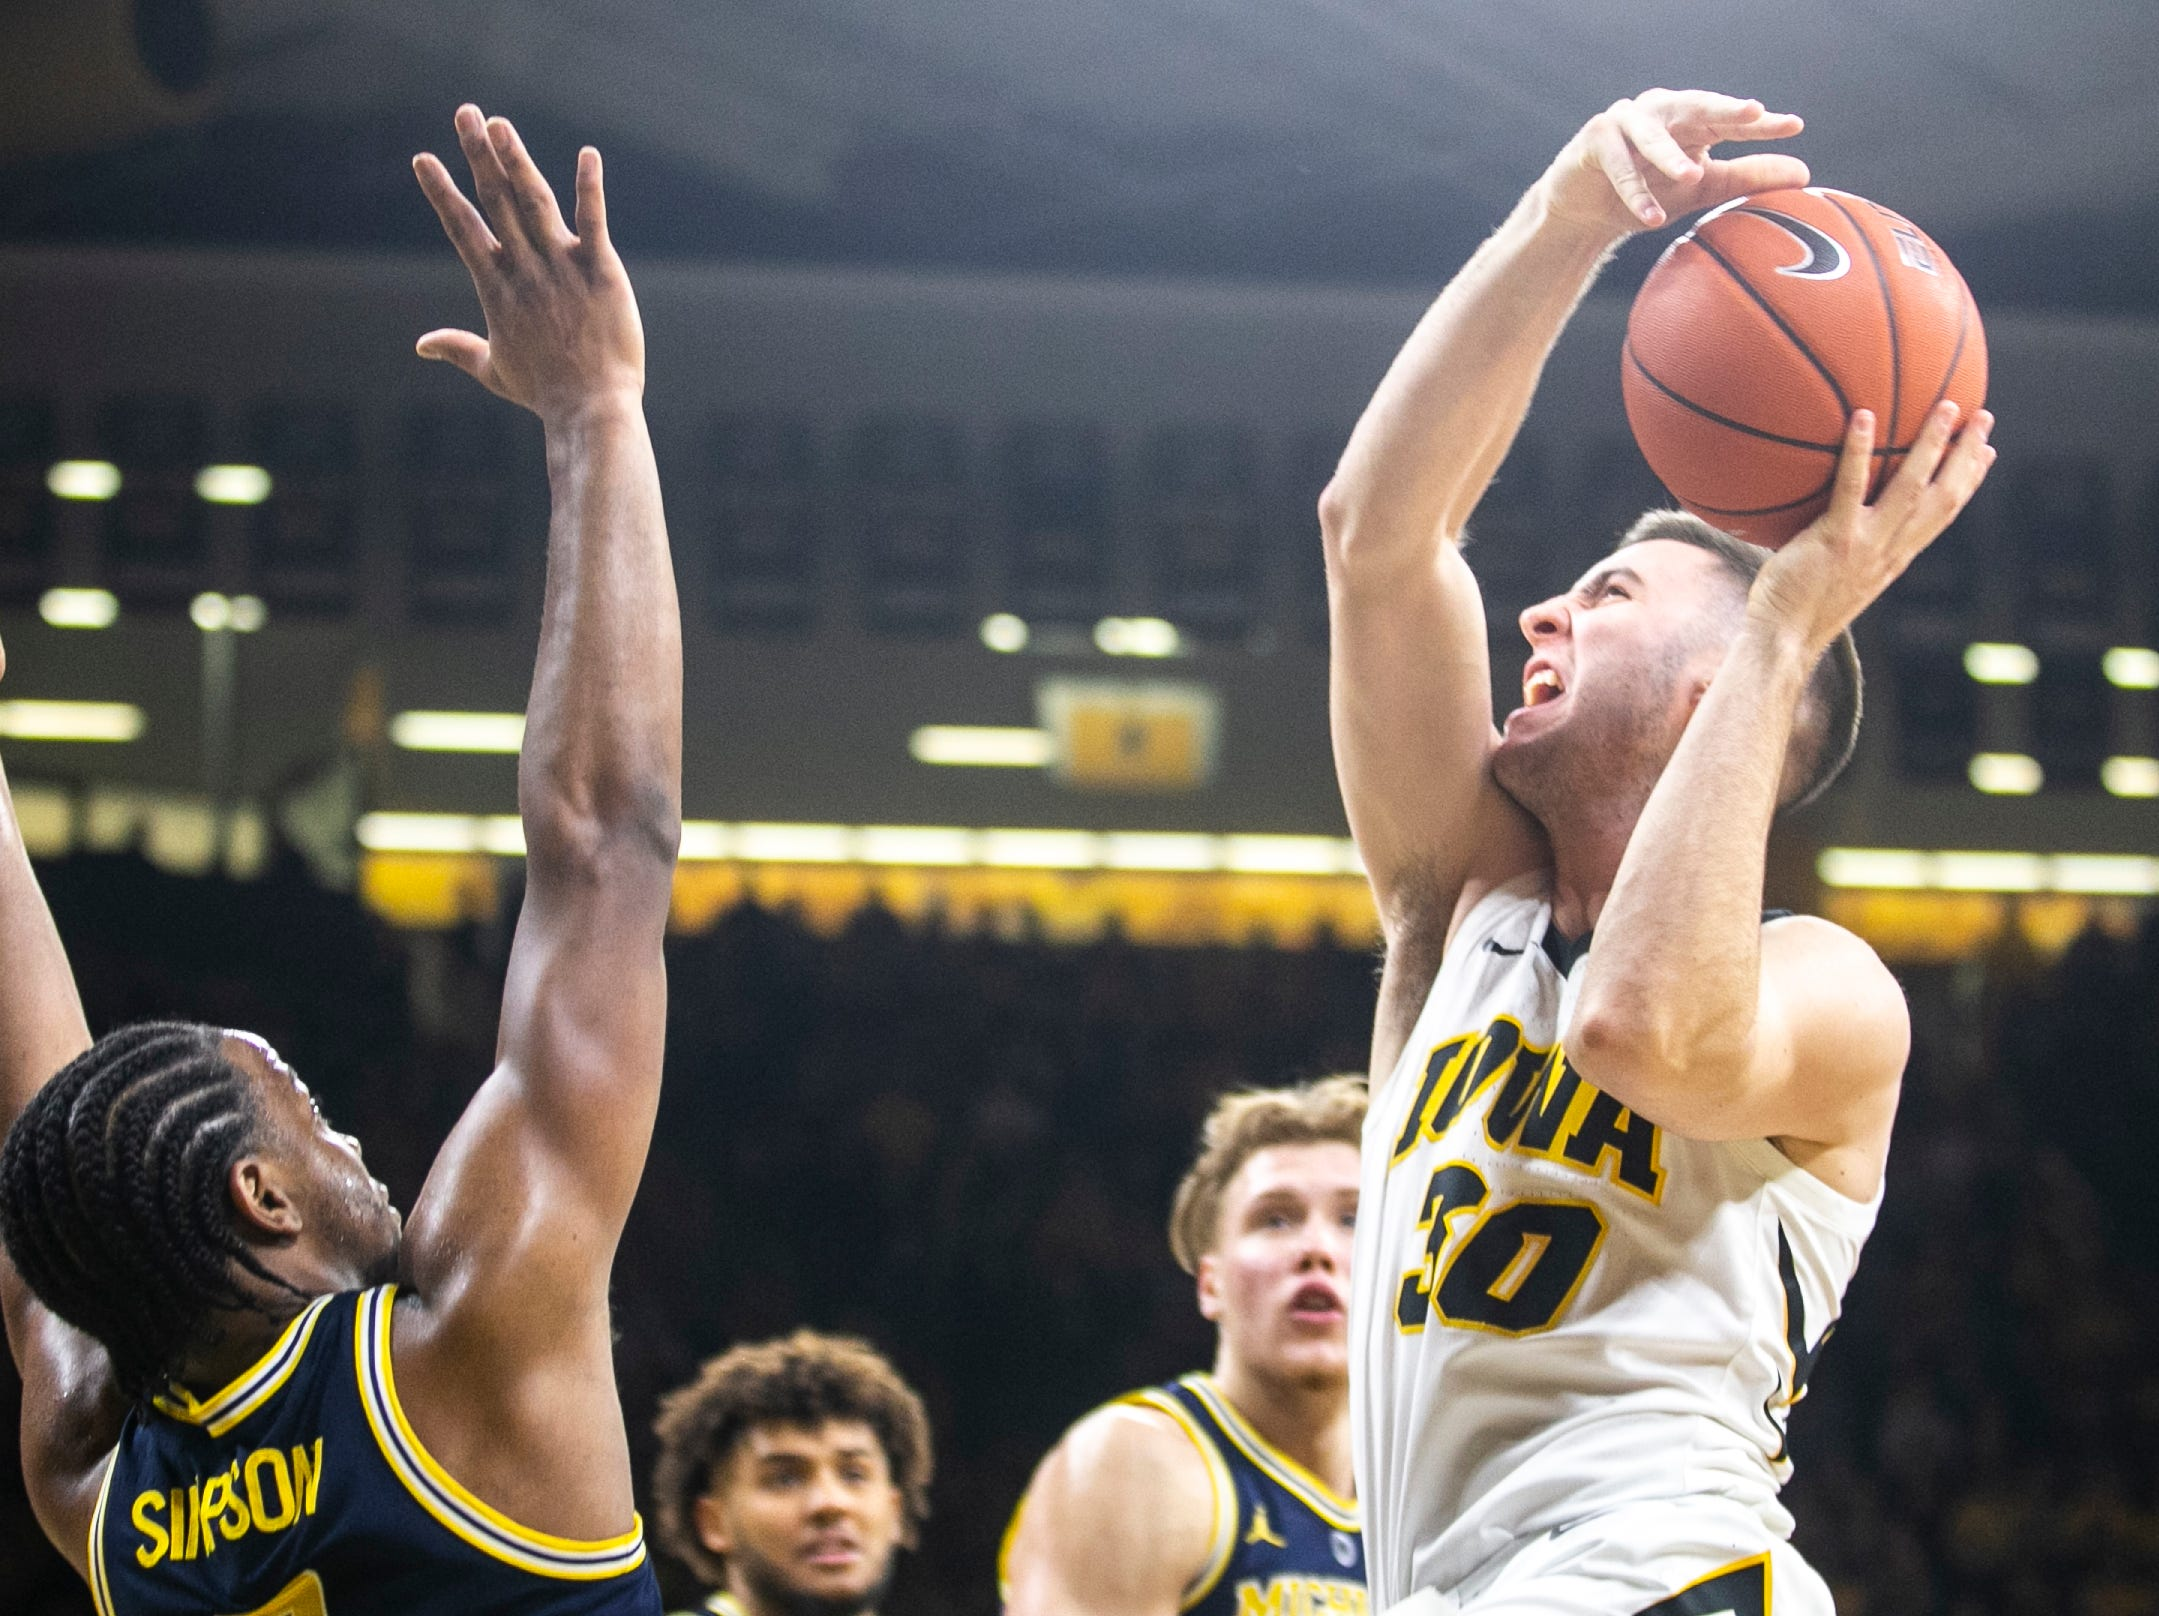 Iowa guard Connor McCaffery (30) drives to the hoop past during a NCAA Big Ten Conference men's basketball game on Friday, Feb. 1, 2019, at Carver-Hawkeye Arena in Iowa City, Iowa.